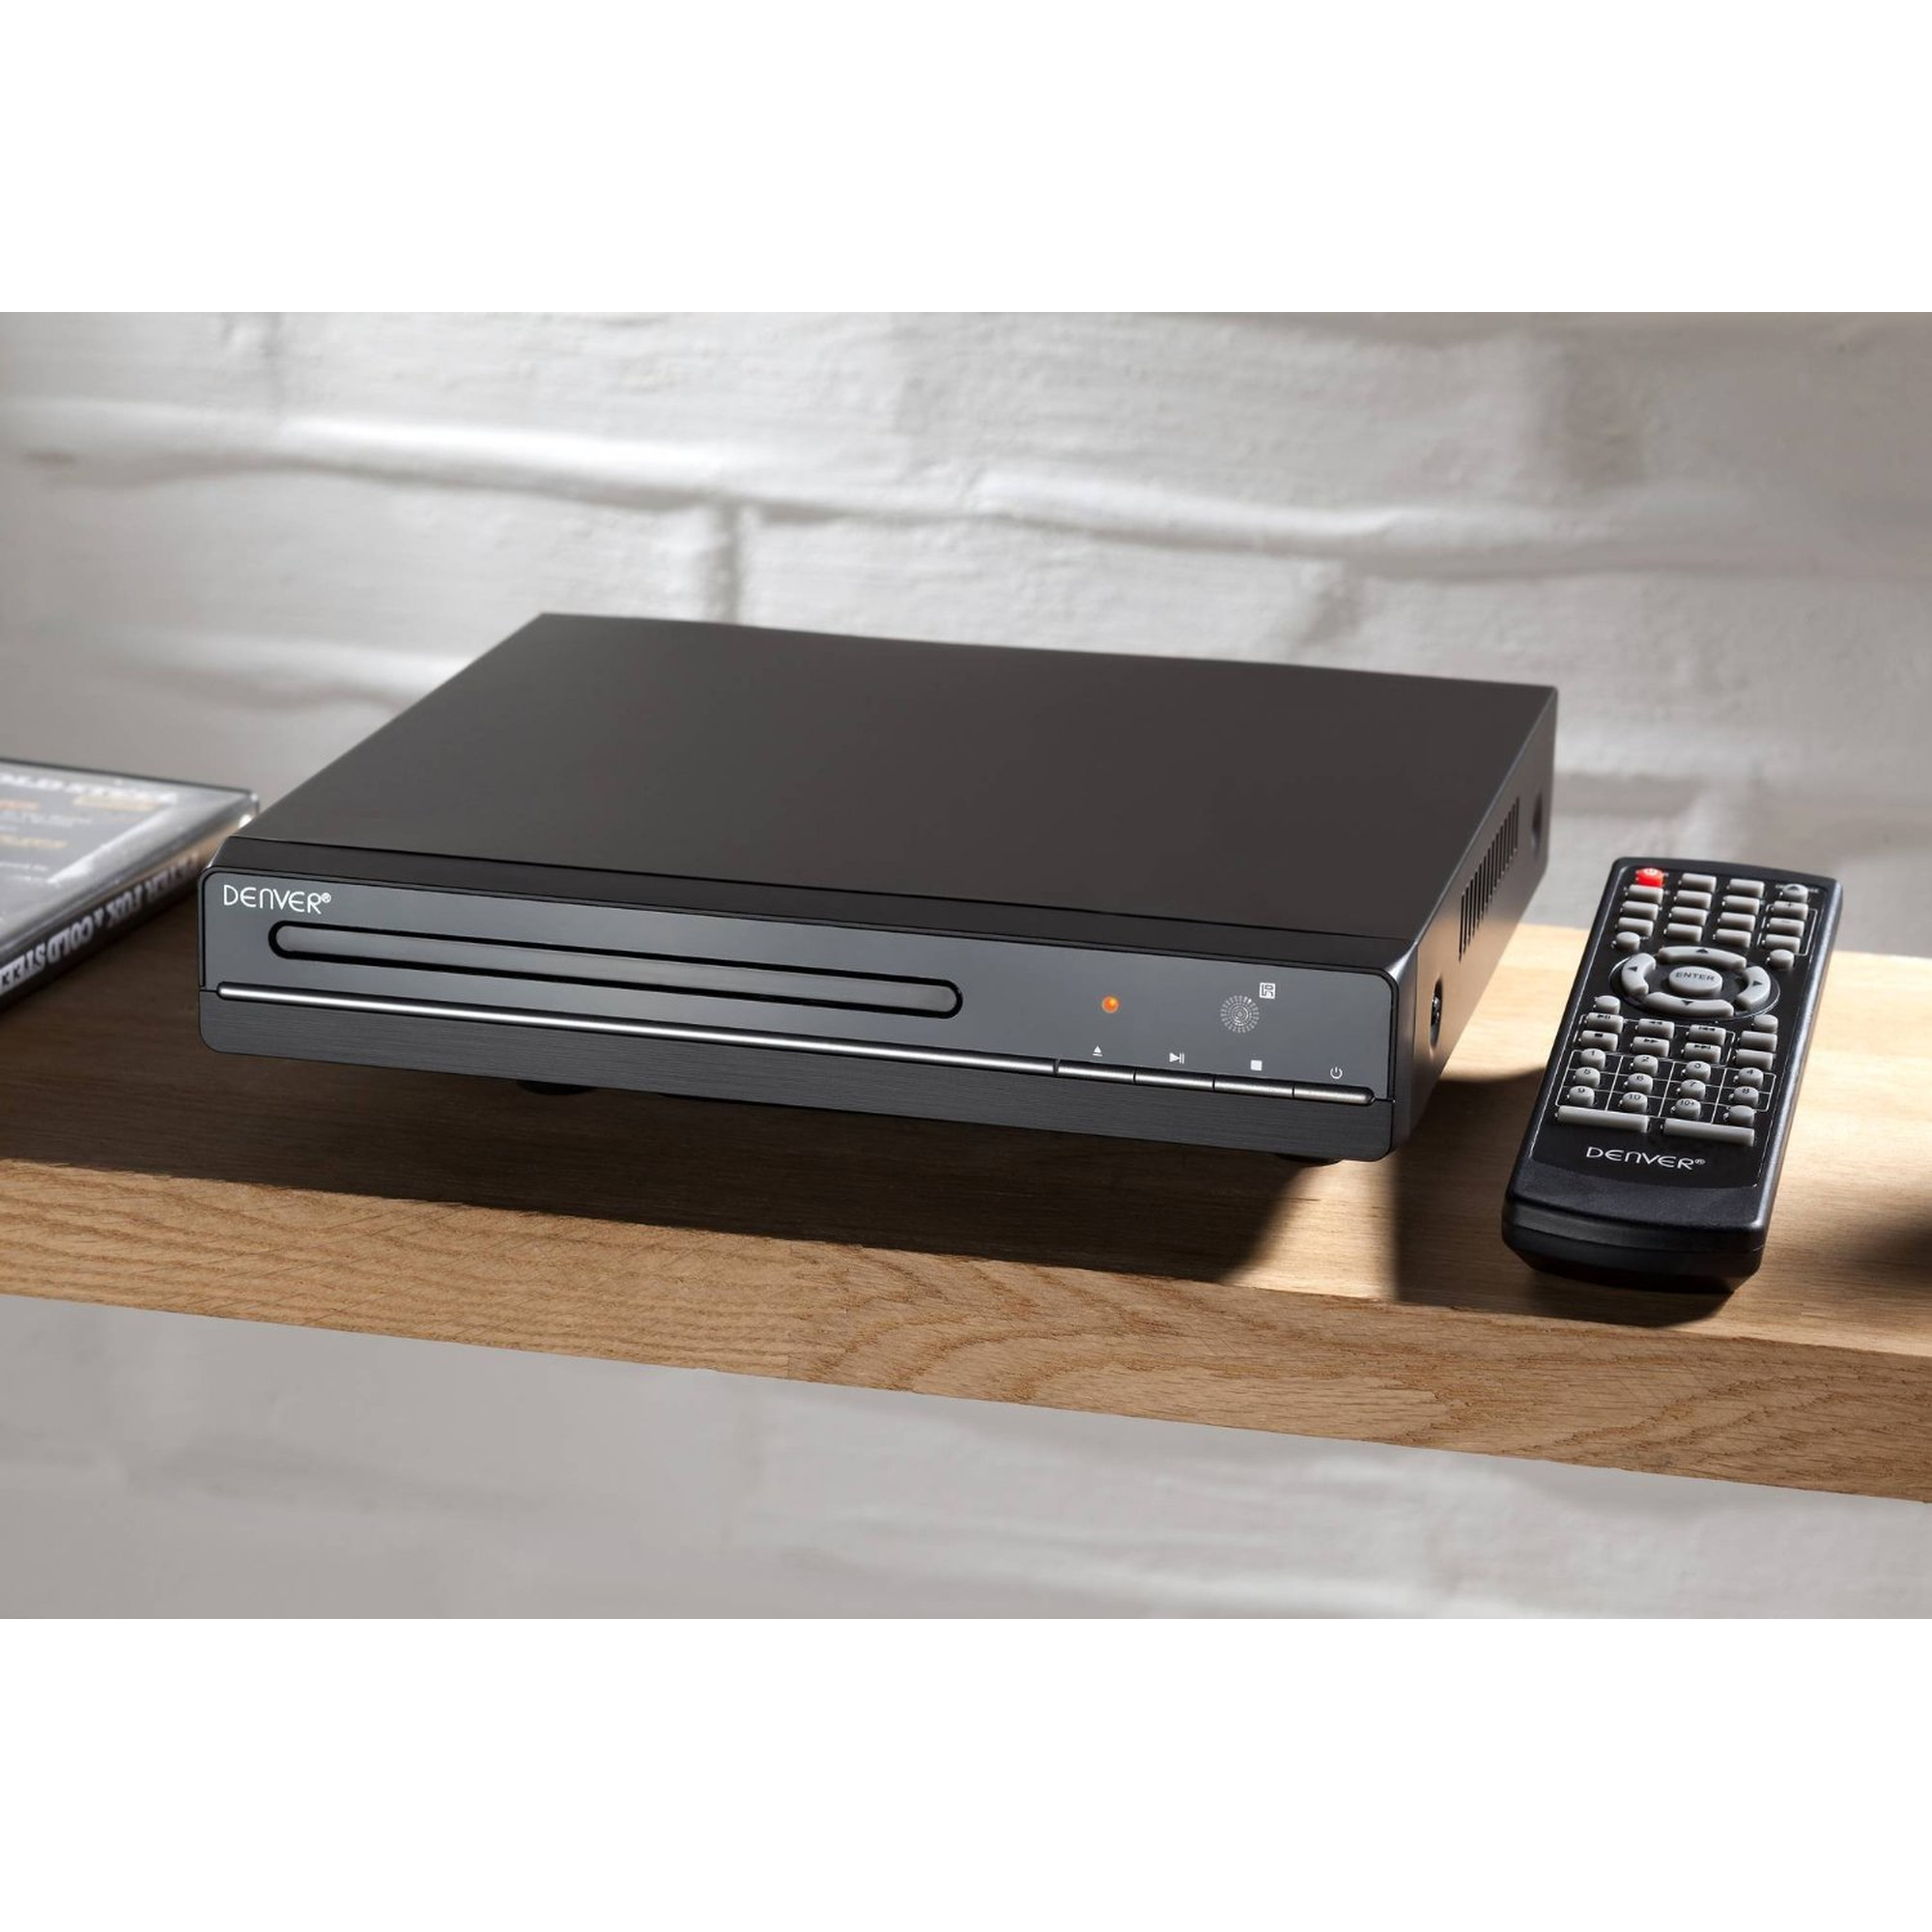 Denver 11314800 DVD Player (HDMI, 2-Kanal) #wieneu